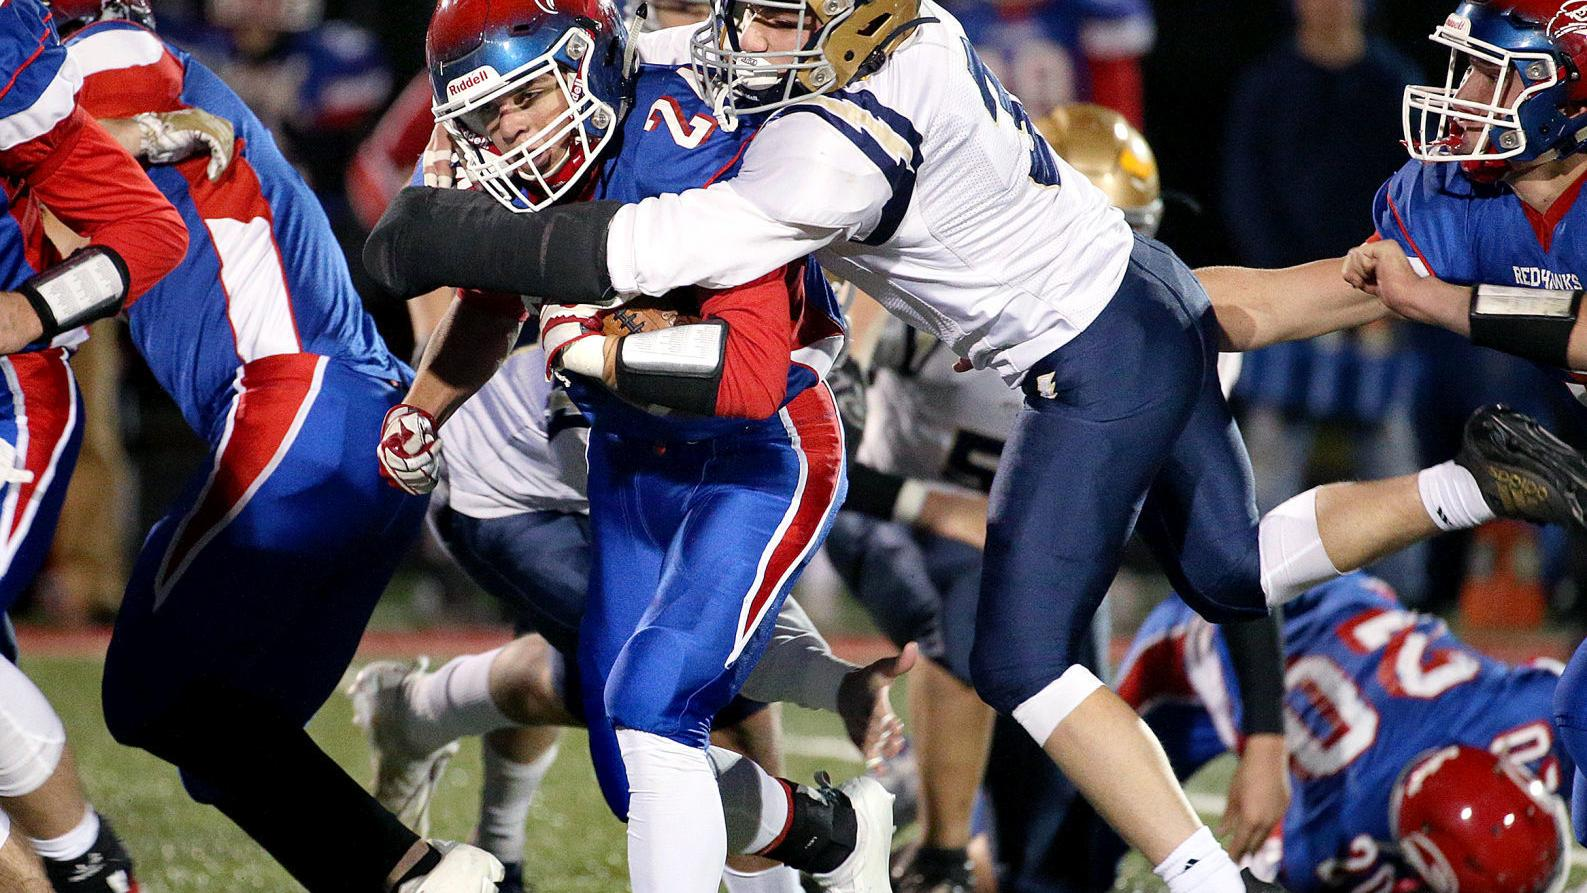 WIAA football playoffs: G-E-T shuts out Aquinas to earn quarterfinal game in Division 5